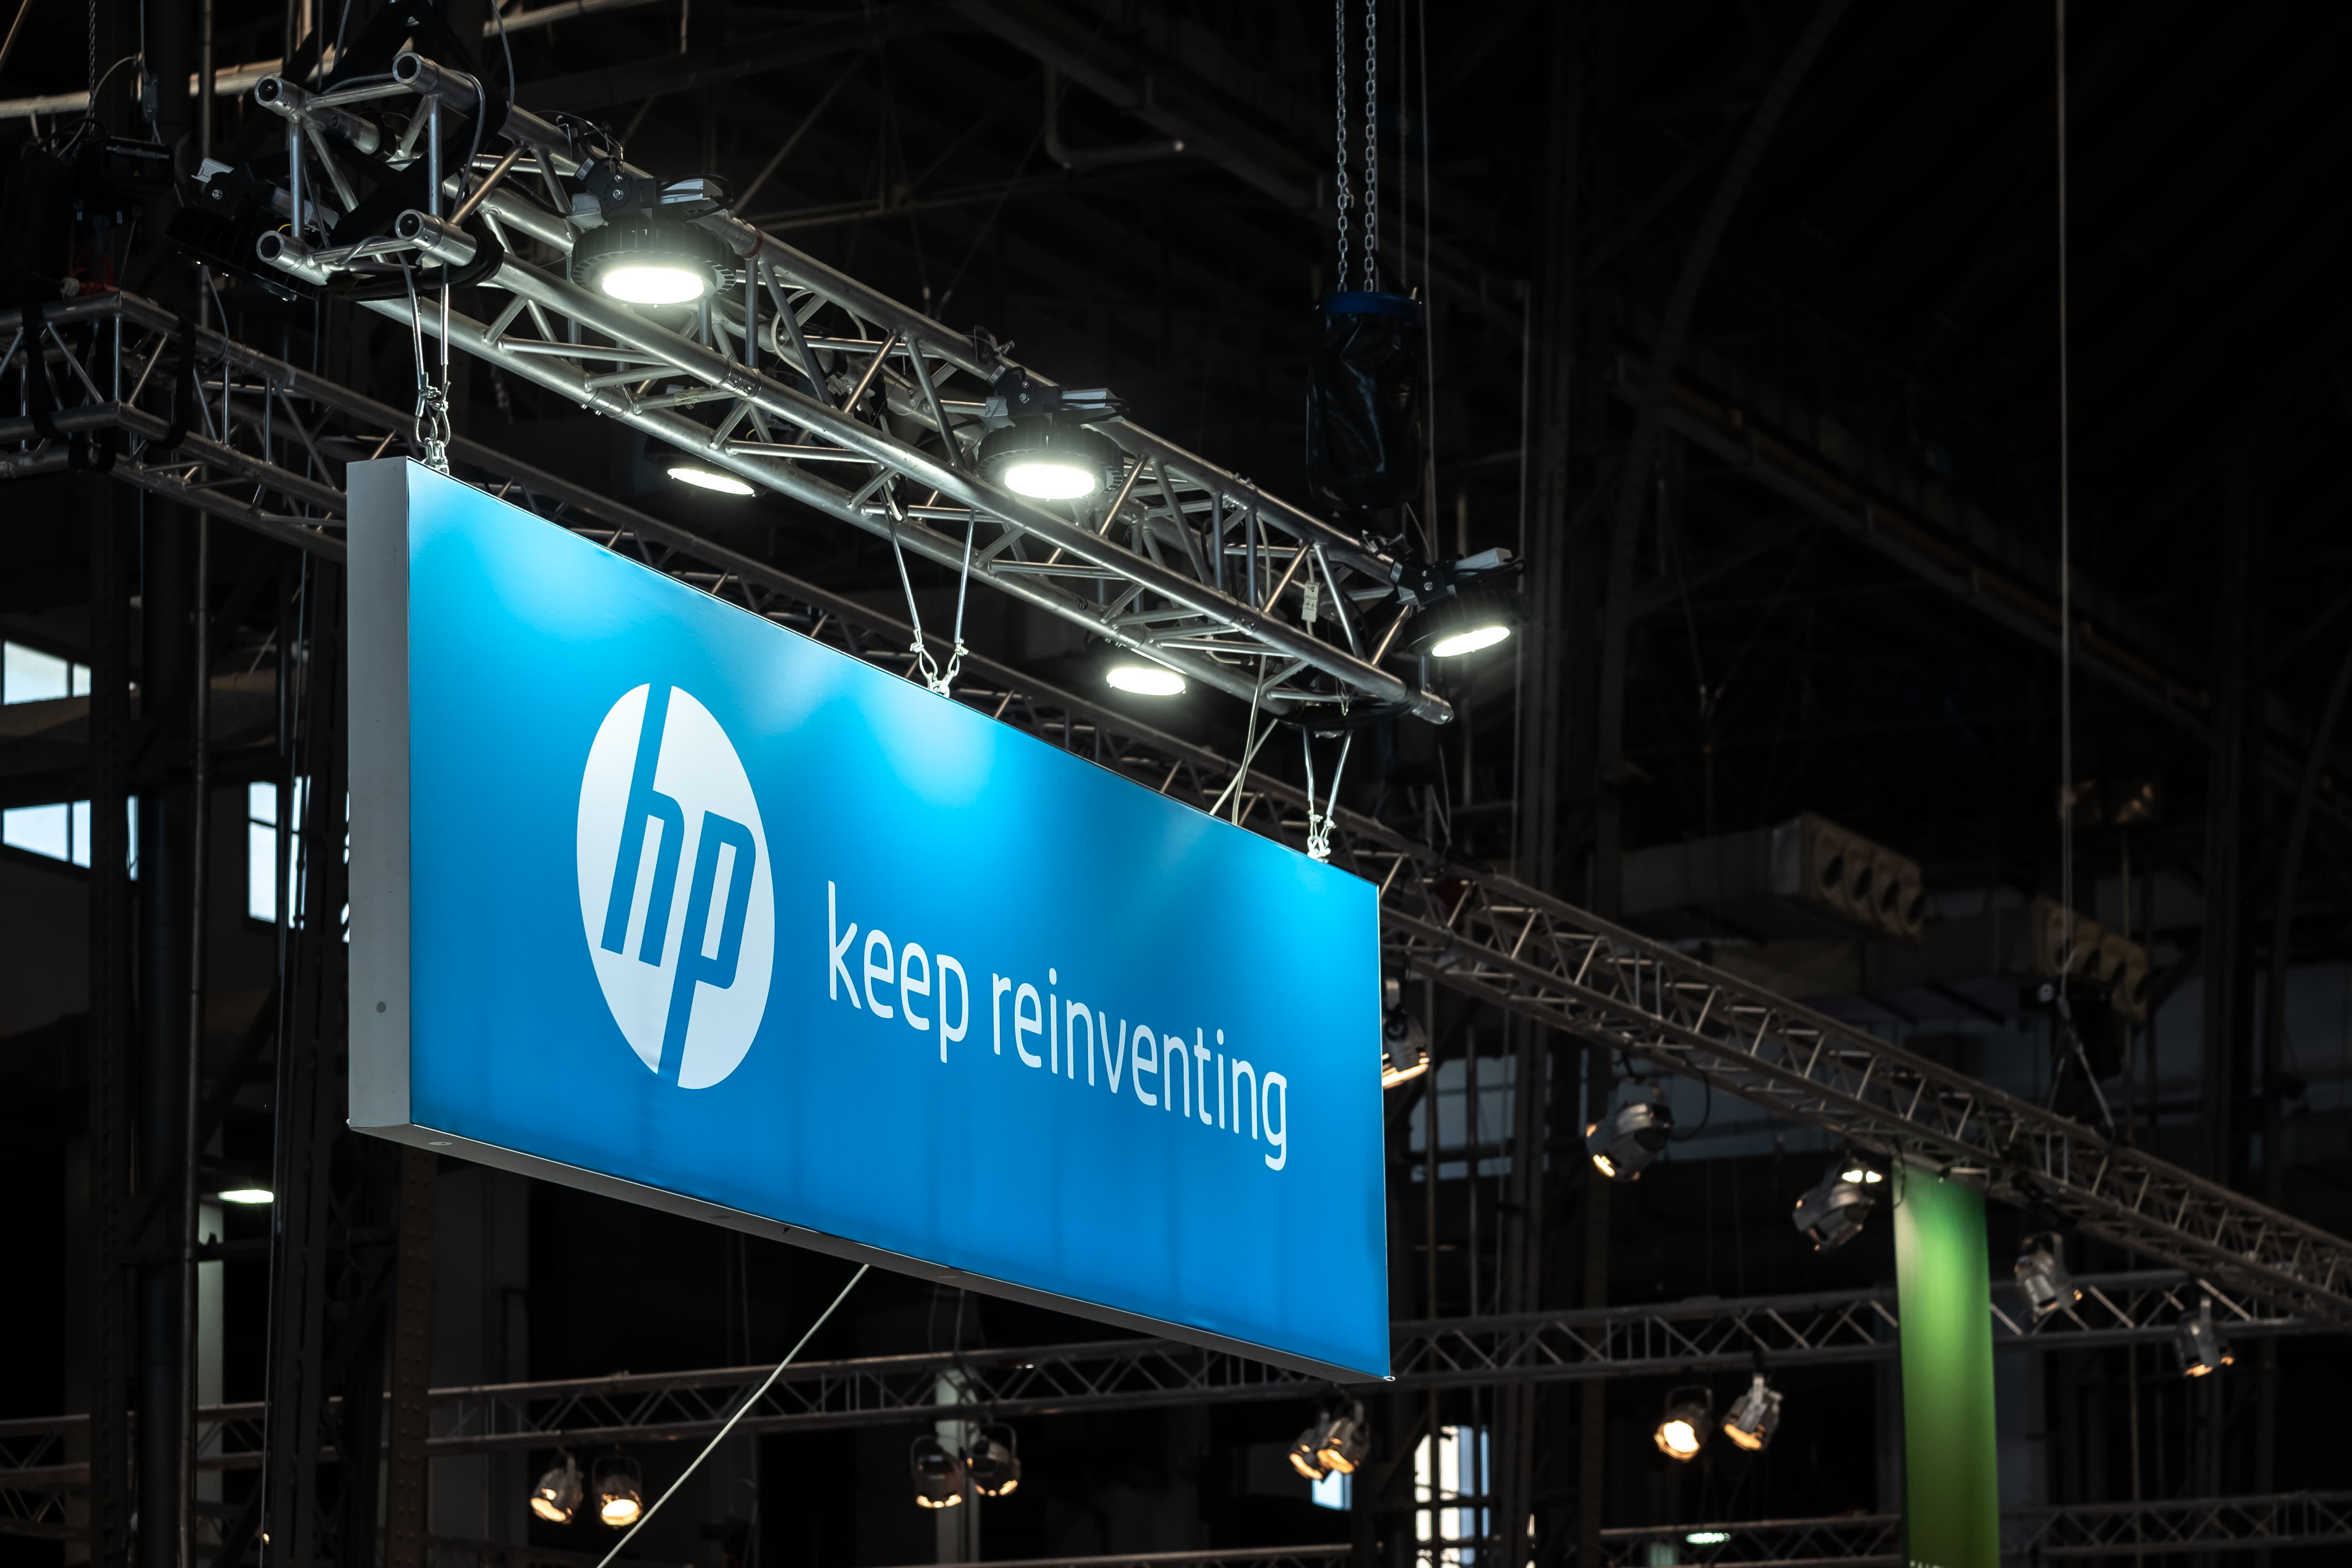 The logo of the 3D printer manufacturer HP is seen during the event. Feria de Barcelona hosts the third edition of the (3D) industry week.